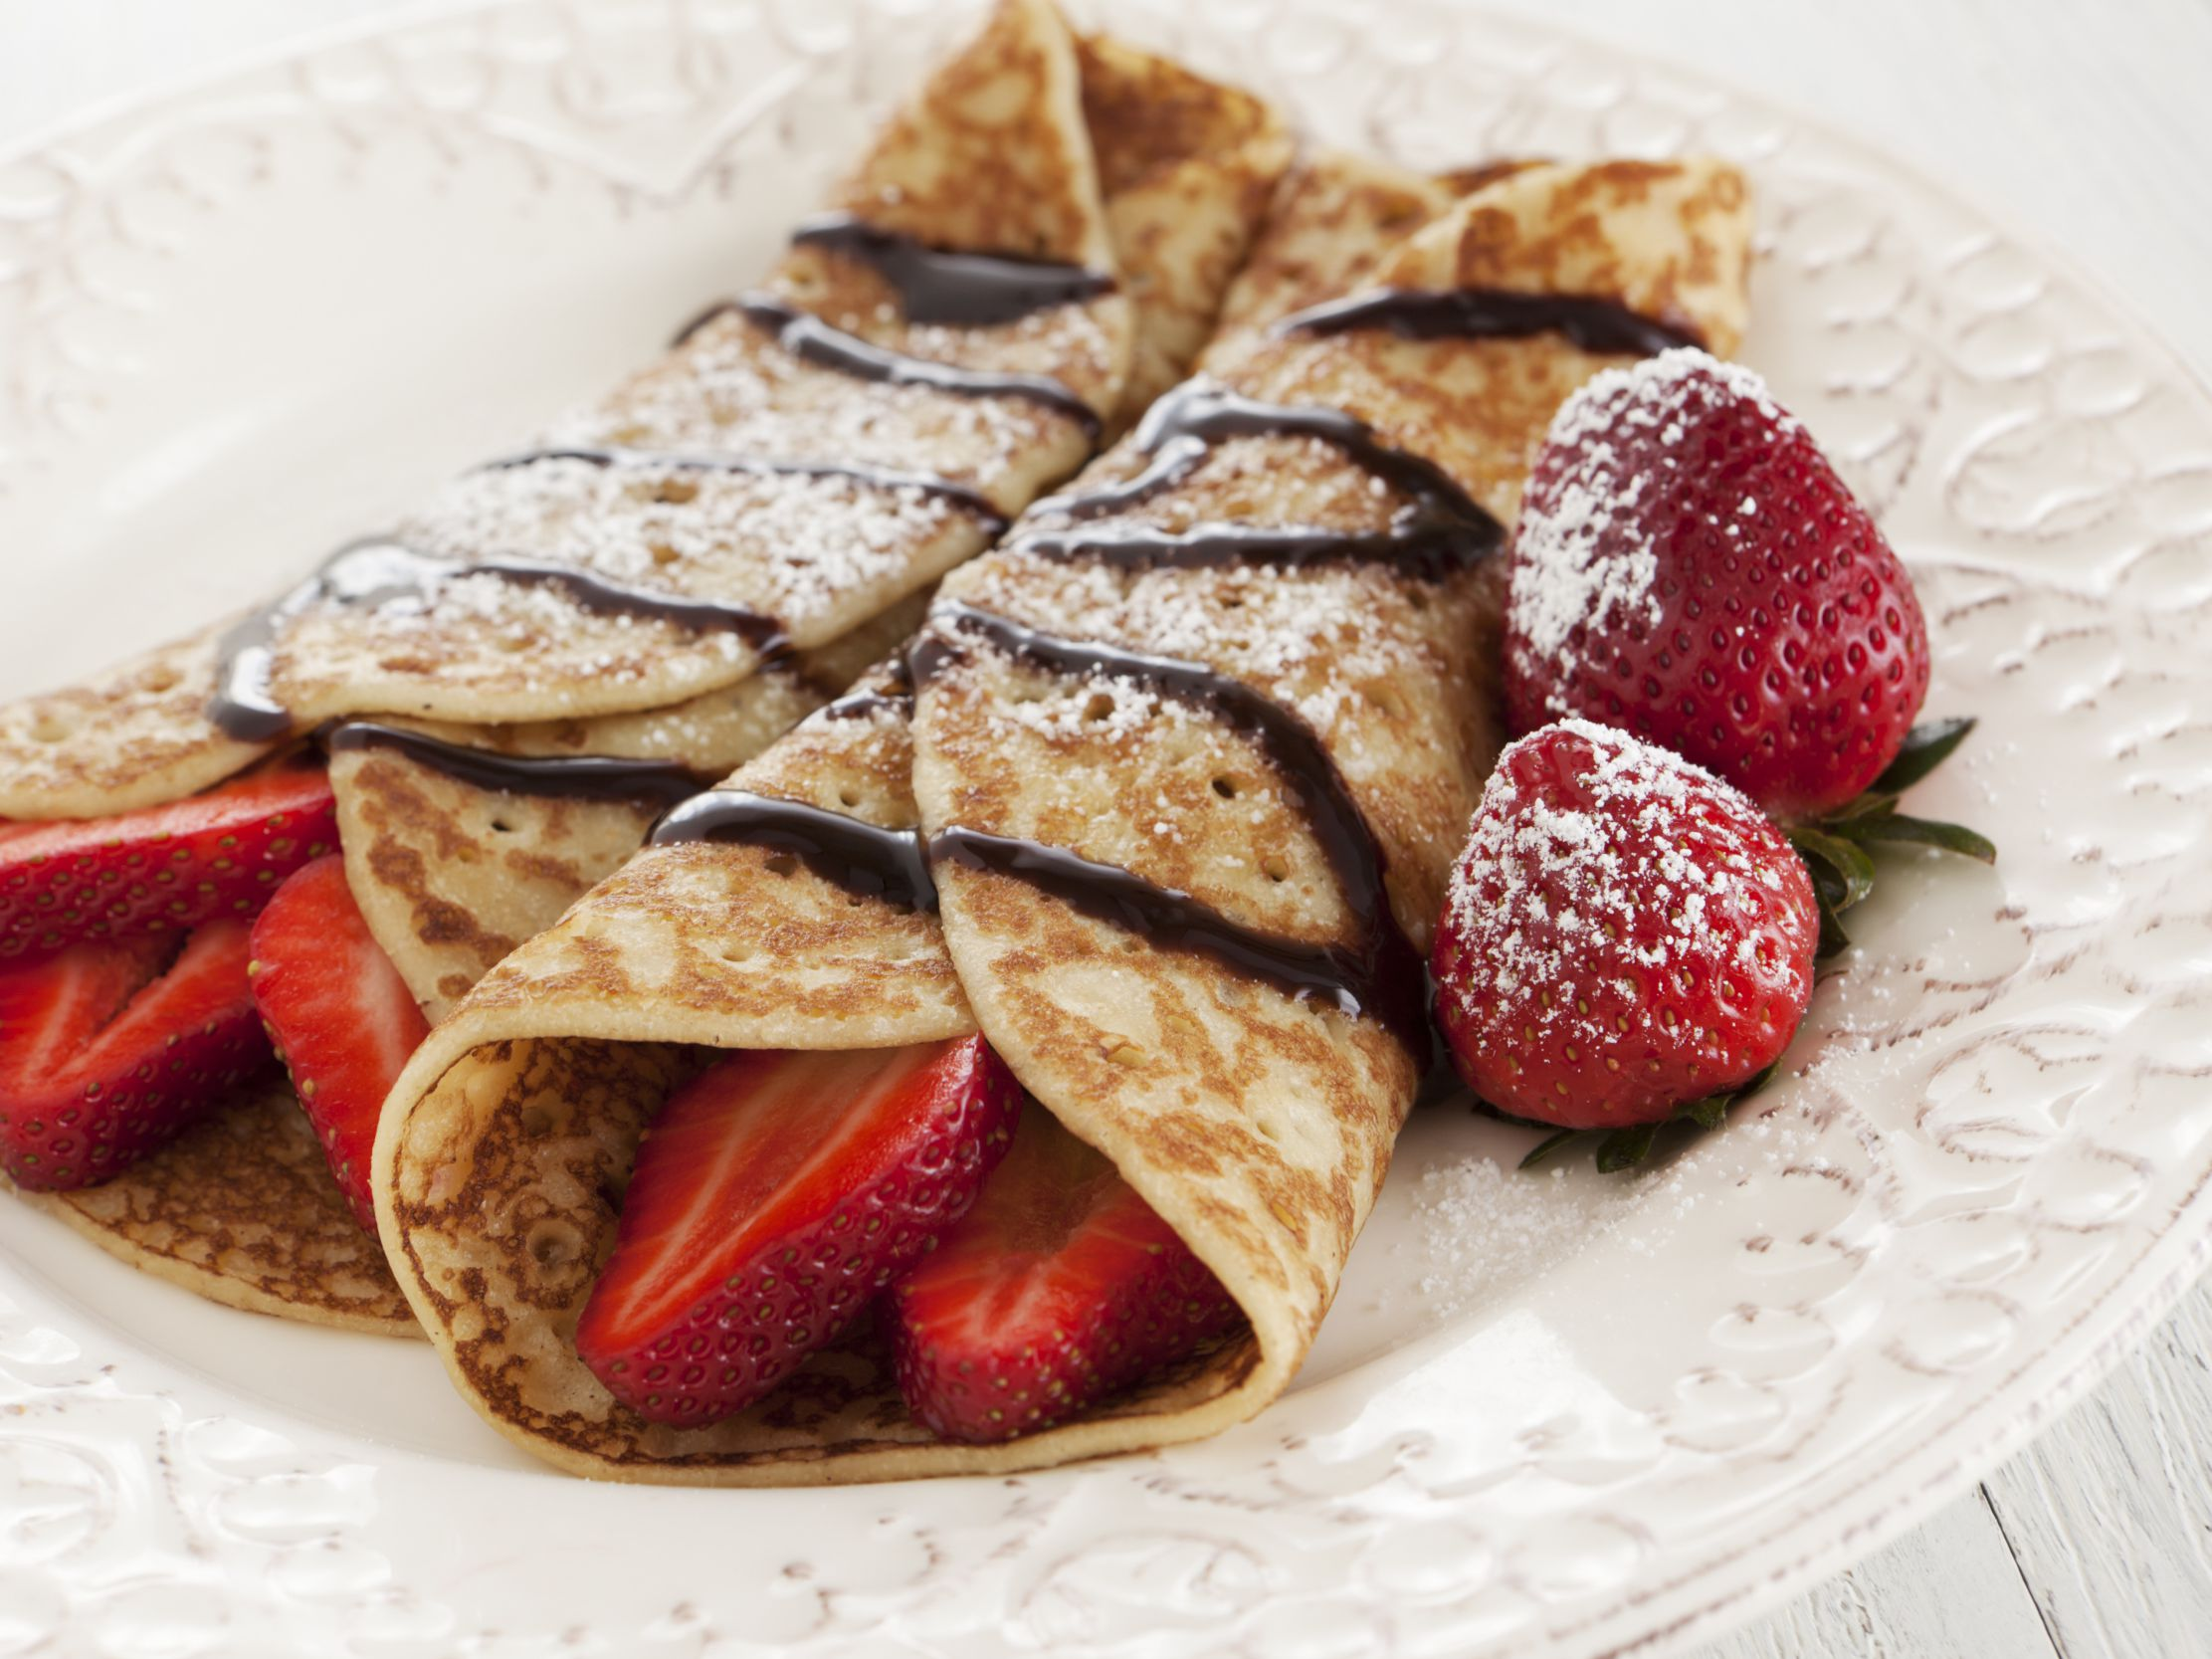 Make Your Own Sweet Or Savory Crepes